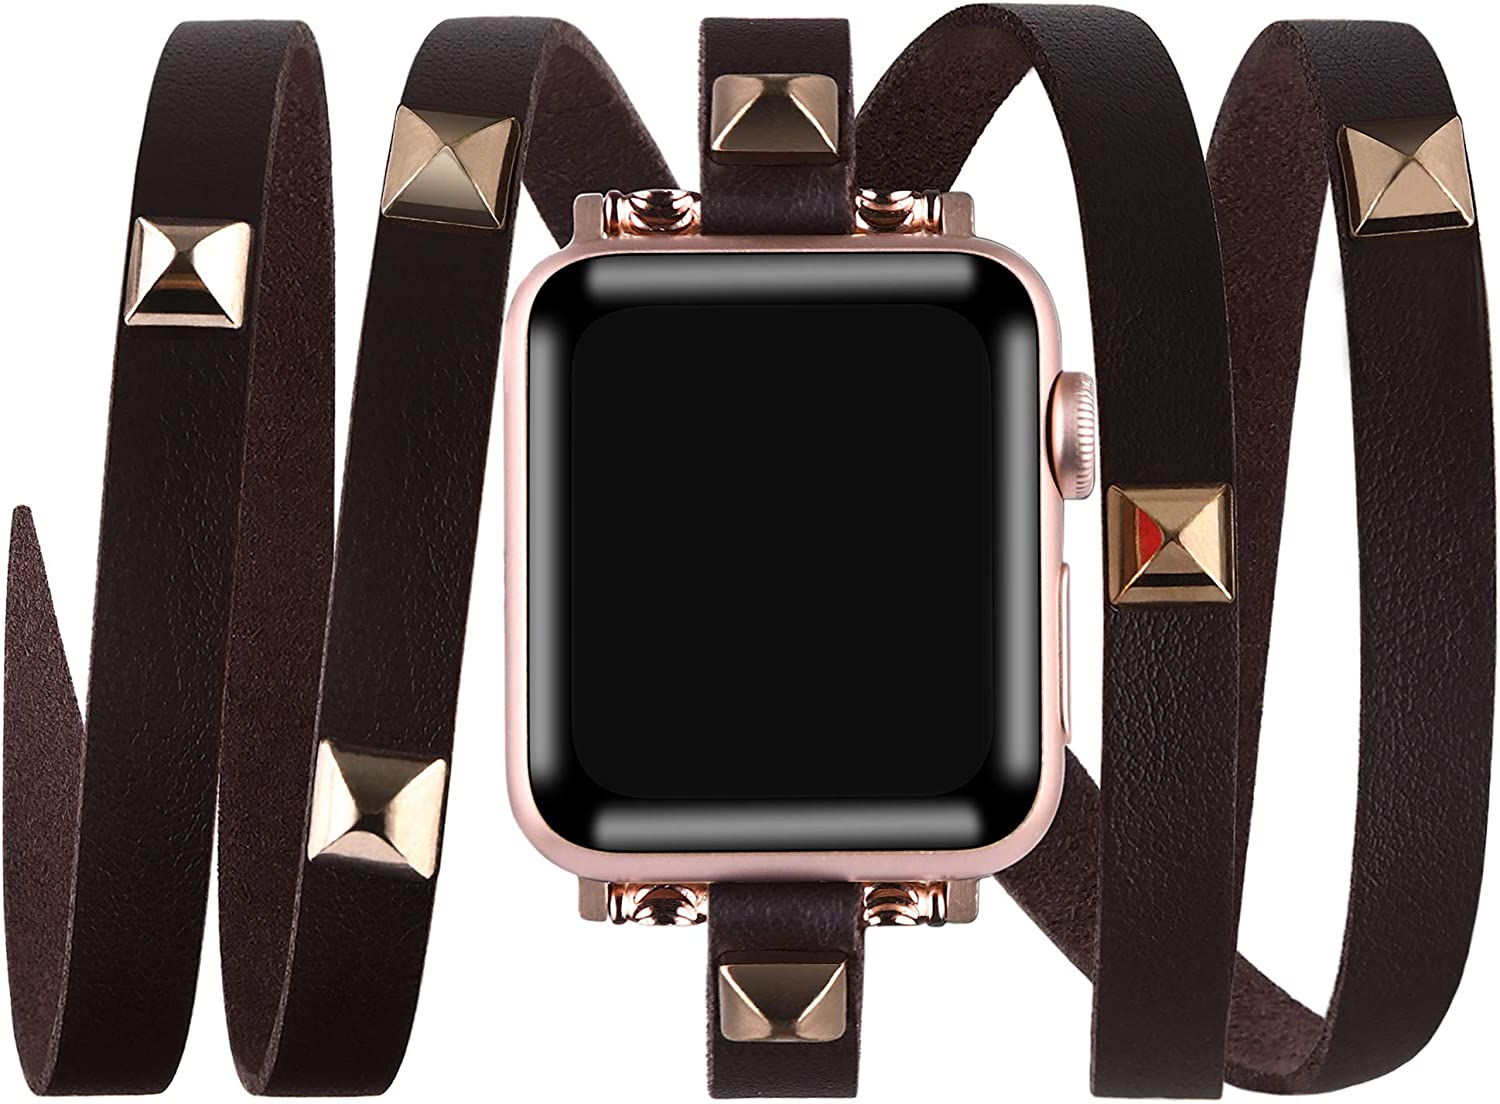 VIQIV Multi-layer Wrap Around Bracelet Compatible with Apple Watch Bands 38mm 40mm 42mm 44mm iWatch Series SE 6/5/4/3/2/1 for Women Mens, Bling Studs Cuff Bracelet Jewelry Wristband Strap Accessories